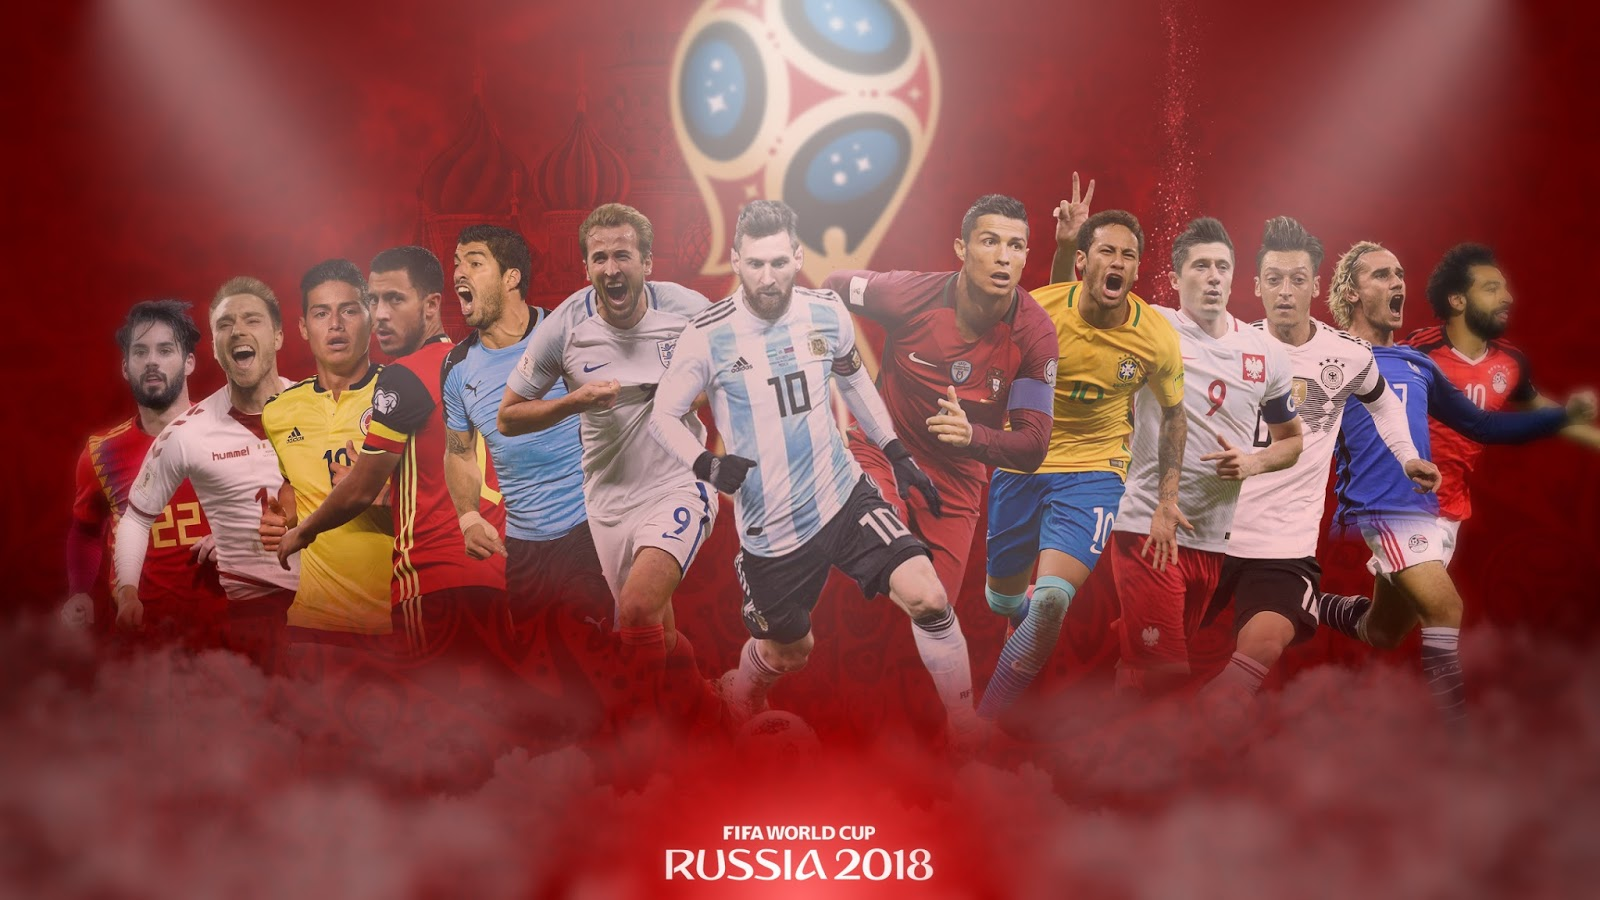 10 best fifa world cup hd wallpapers